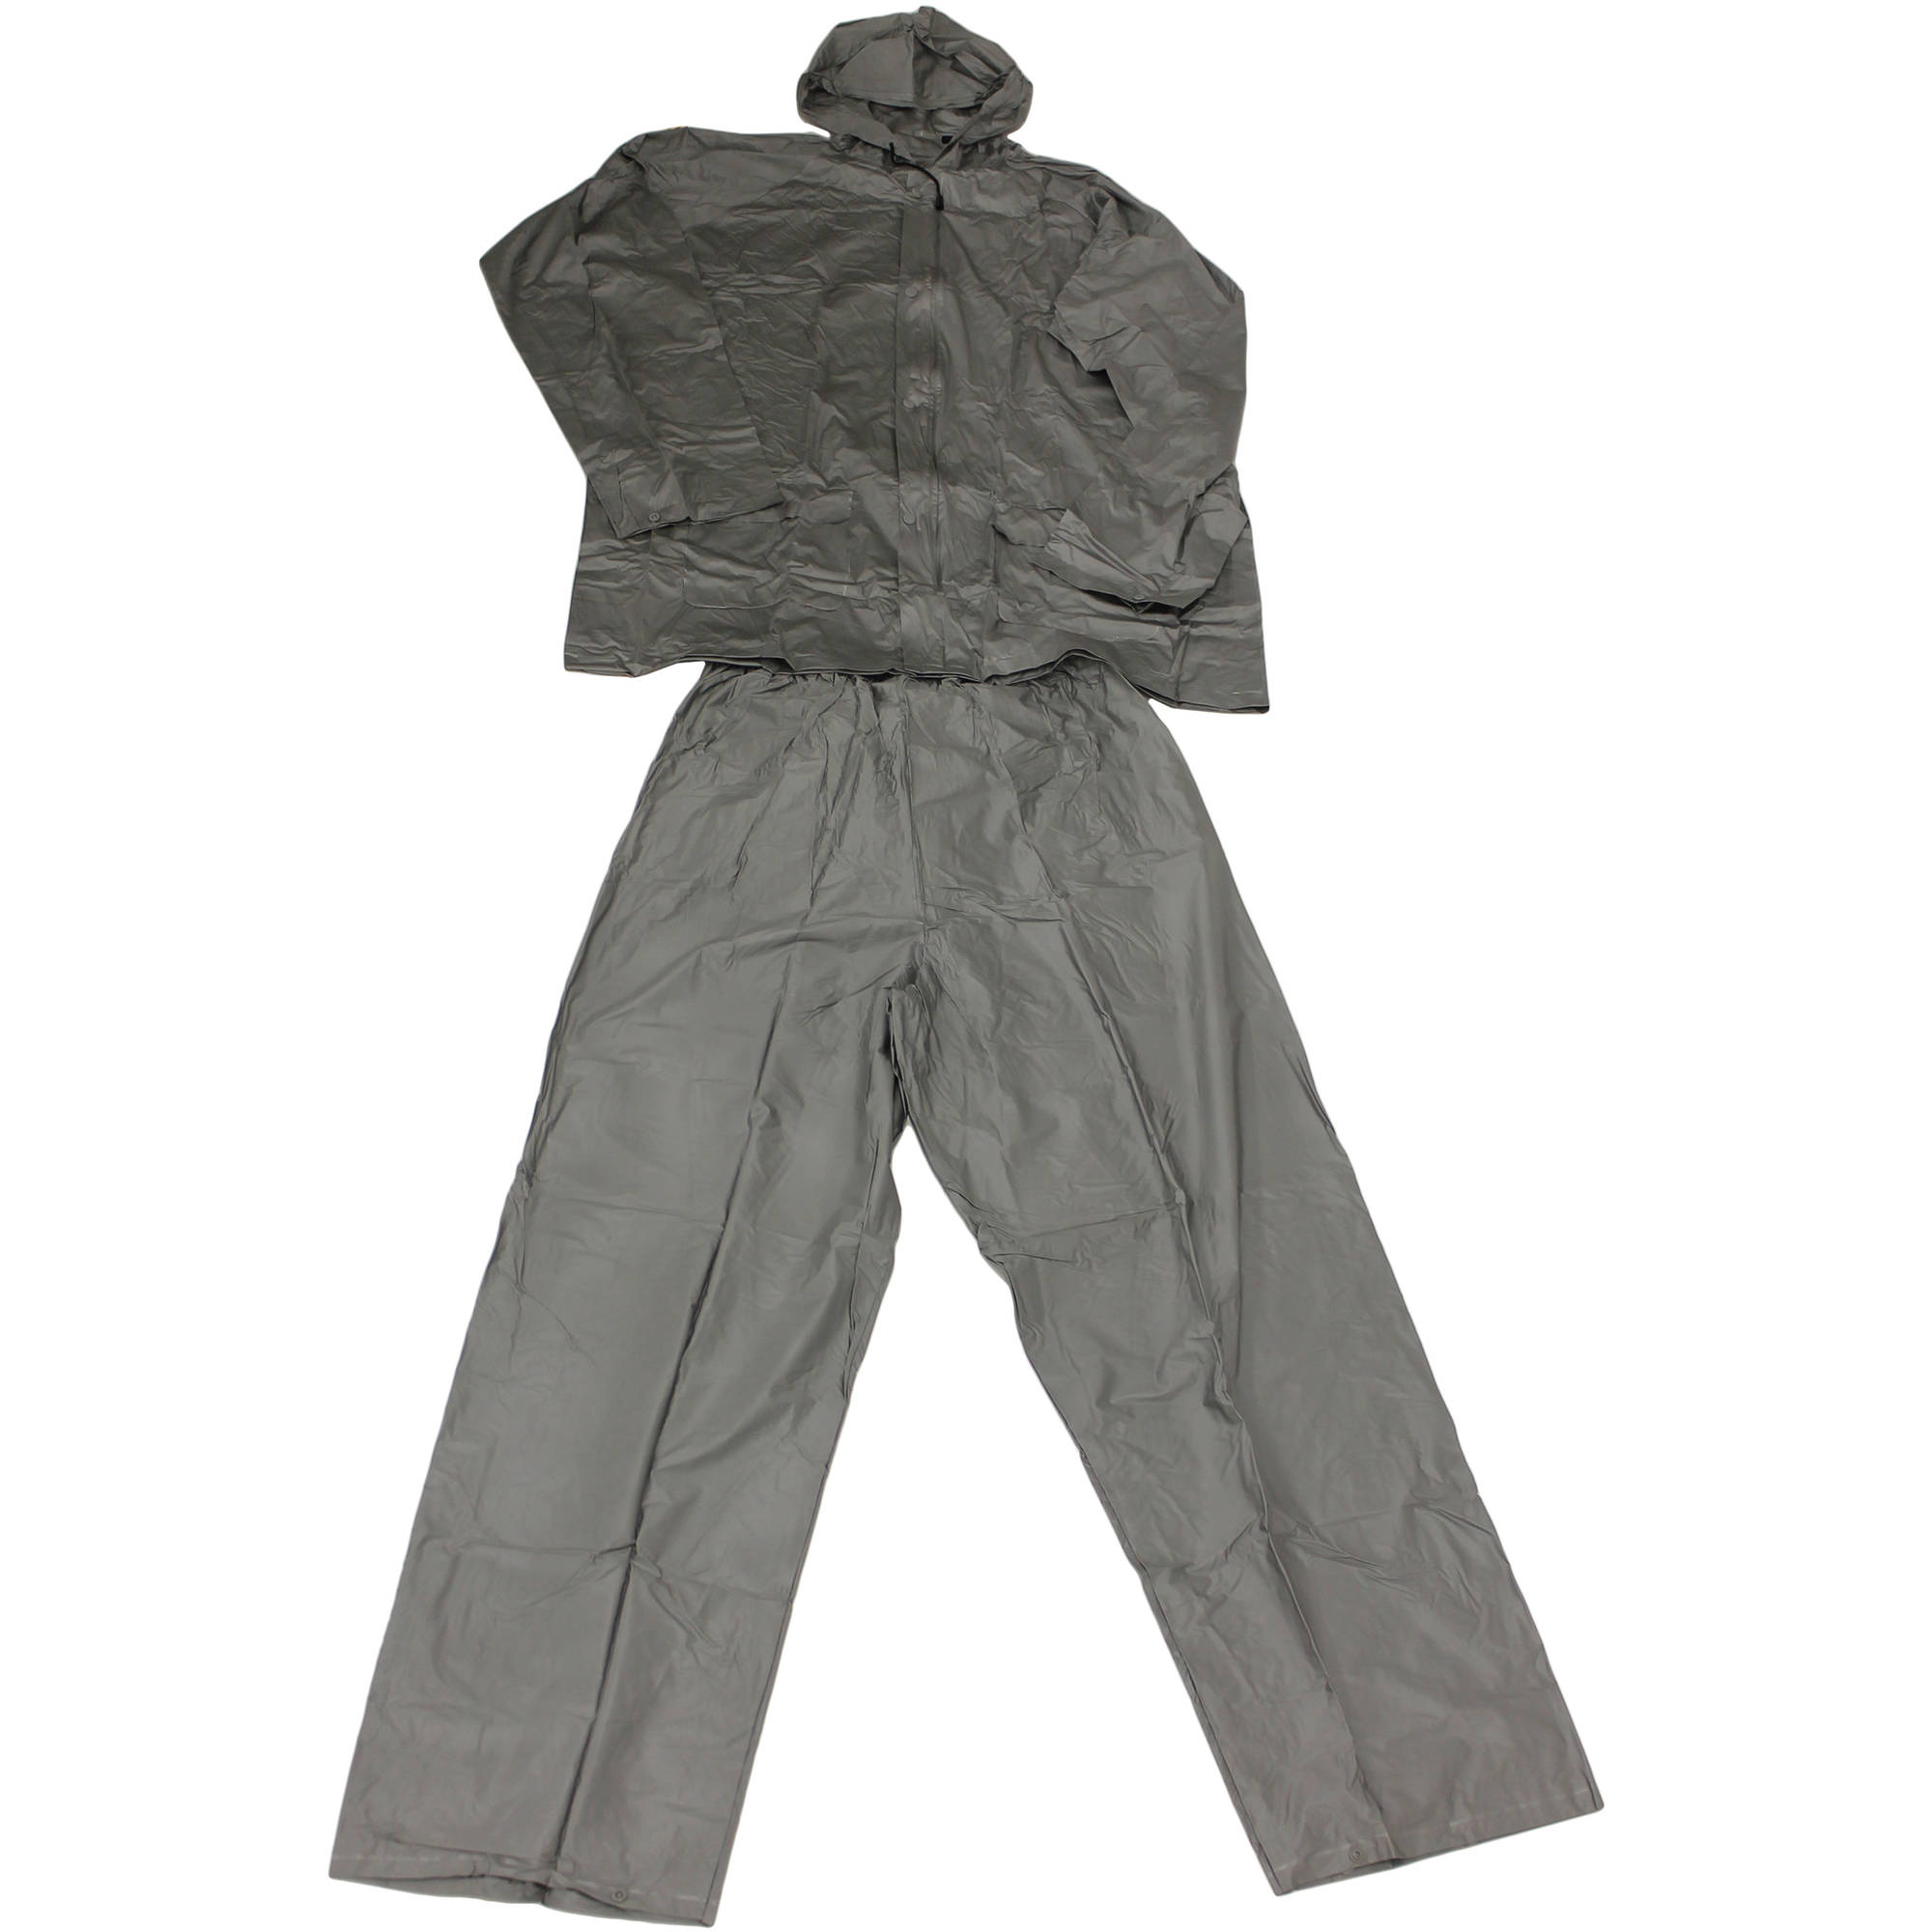 Ultimate Survival Technologies Adult All-Weather Rain Suit, Gray by Generic